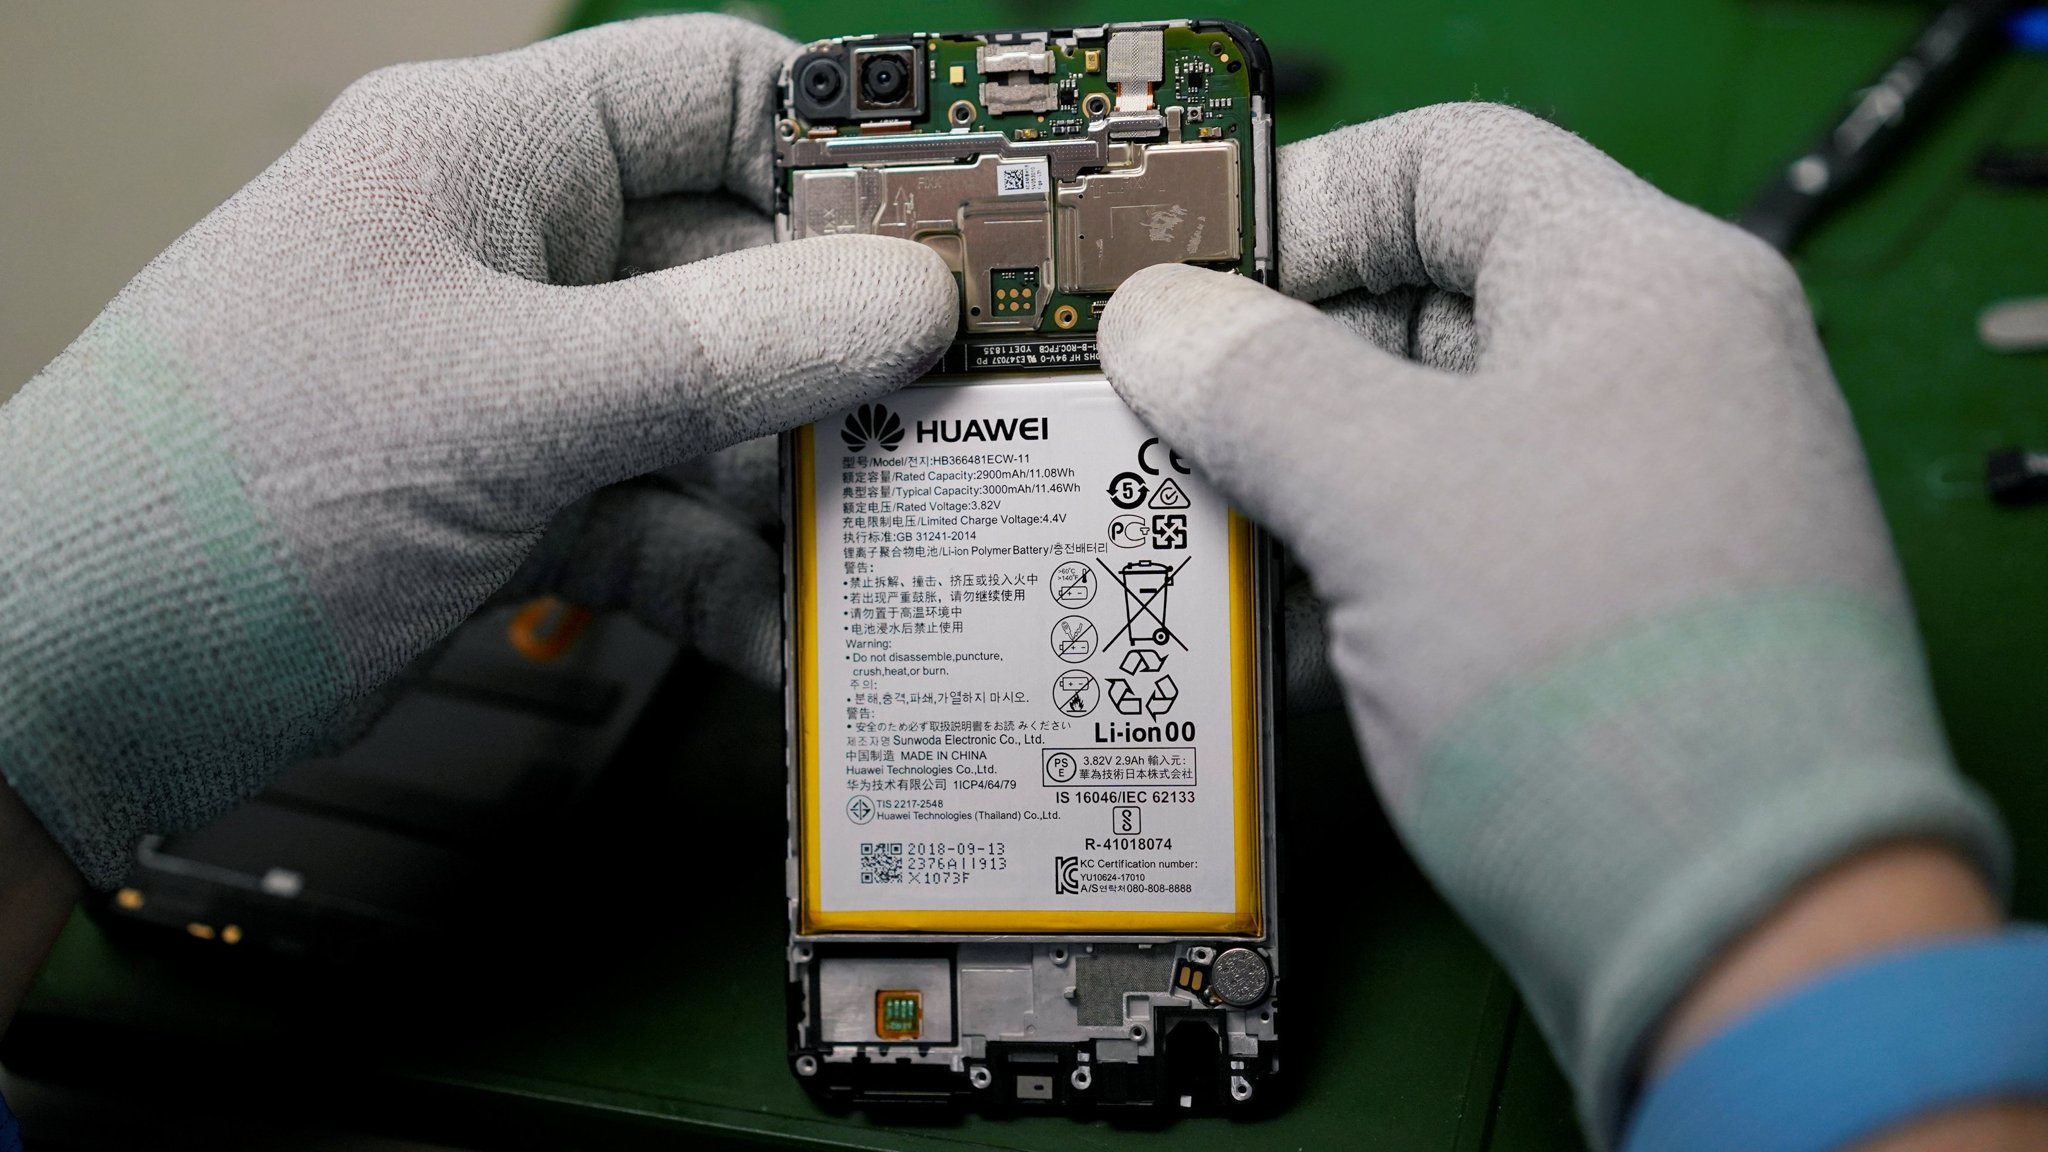 US tele s and tech firms fear fallout from Huawei ban